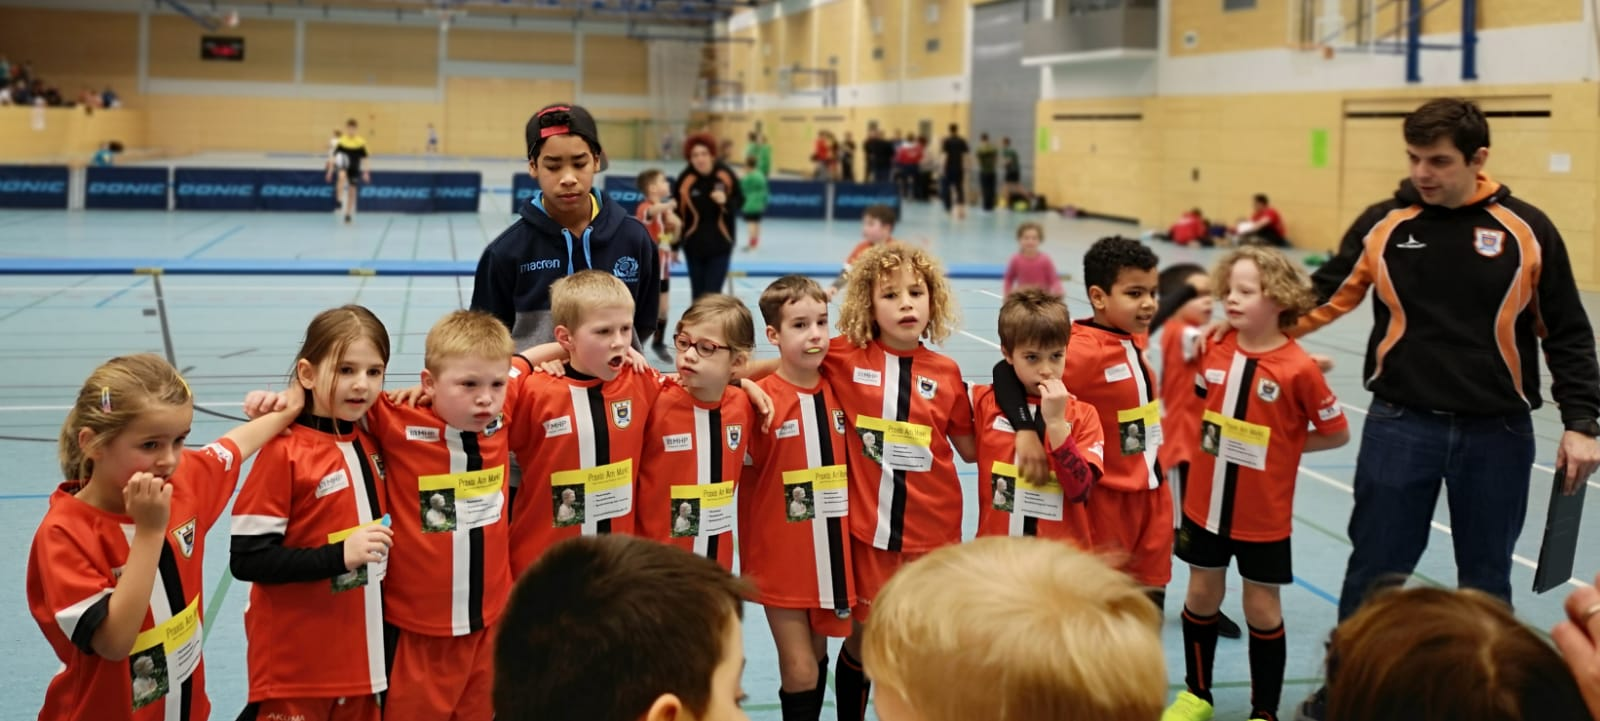 RG-Heidelberg U8-Jugend Turnier-Team-Orange 2019